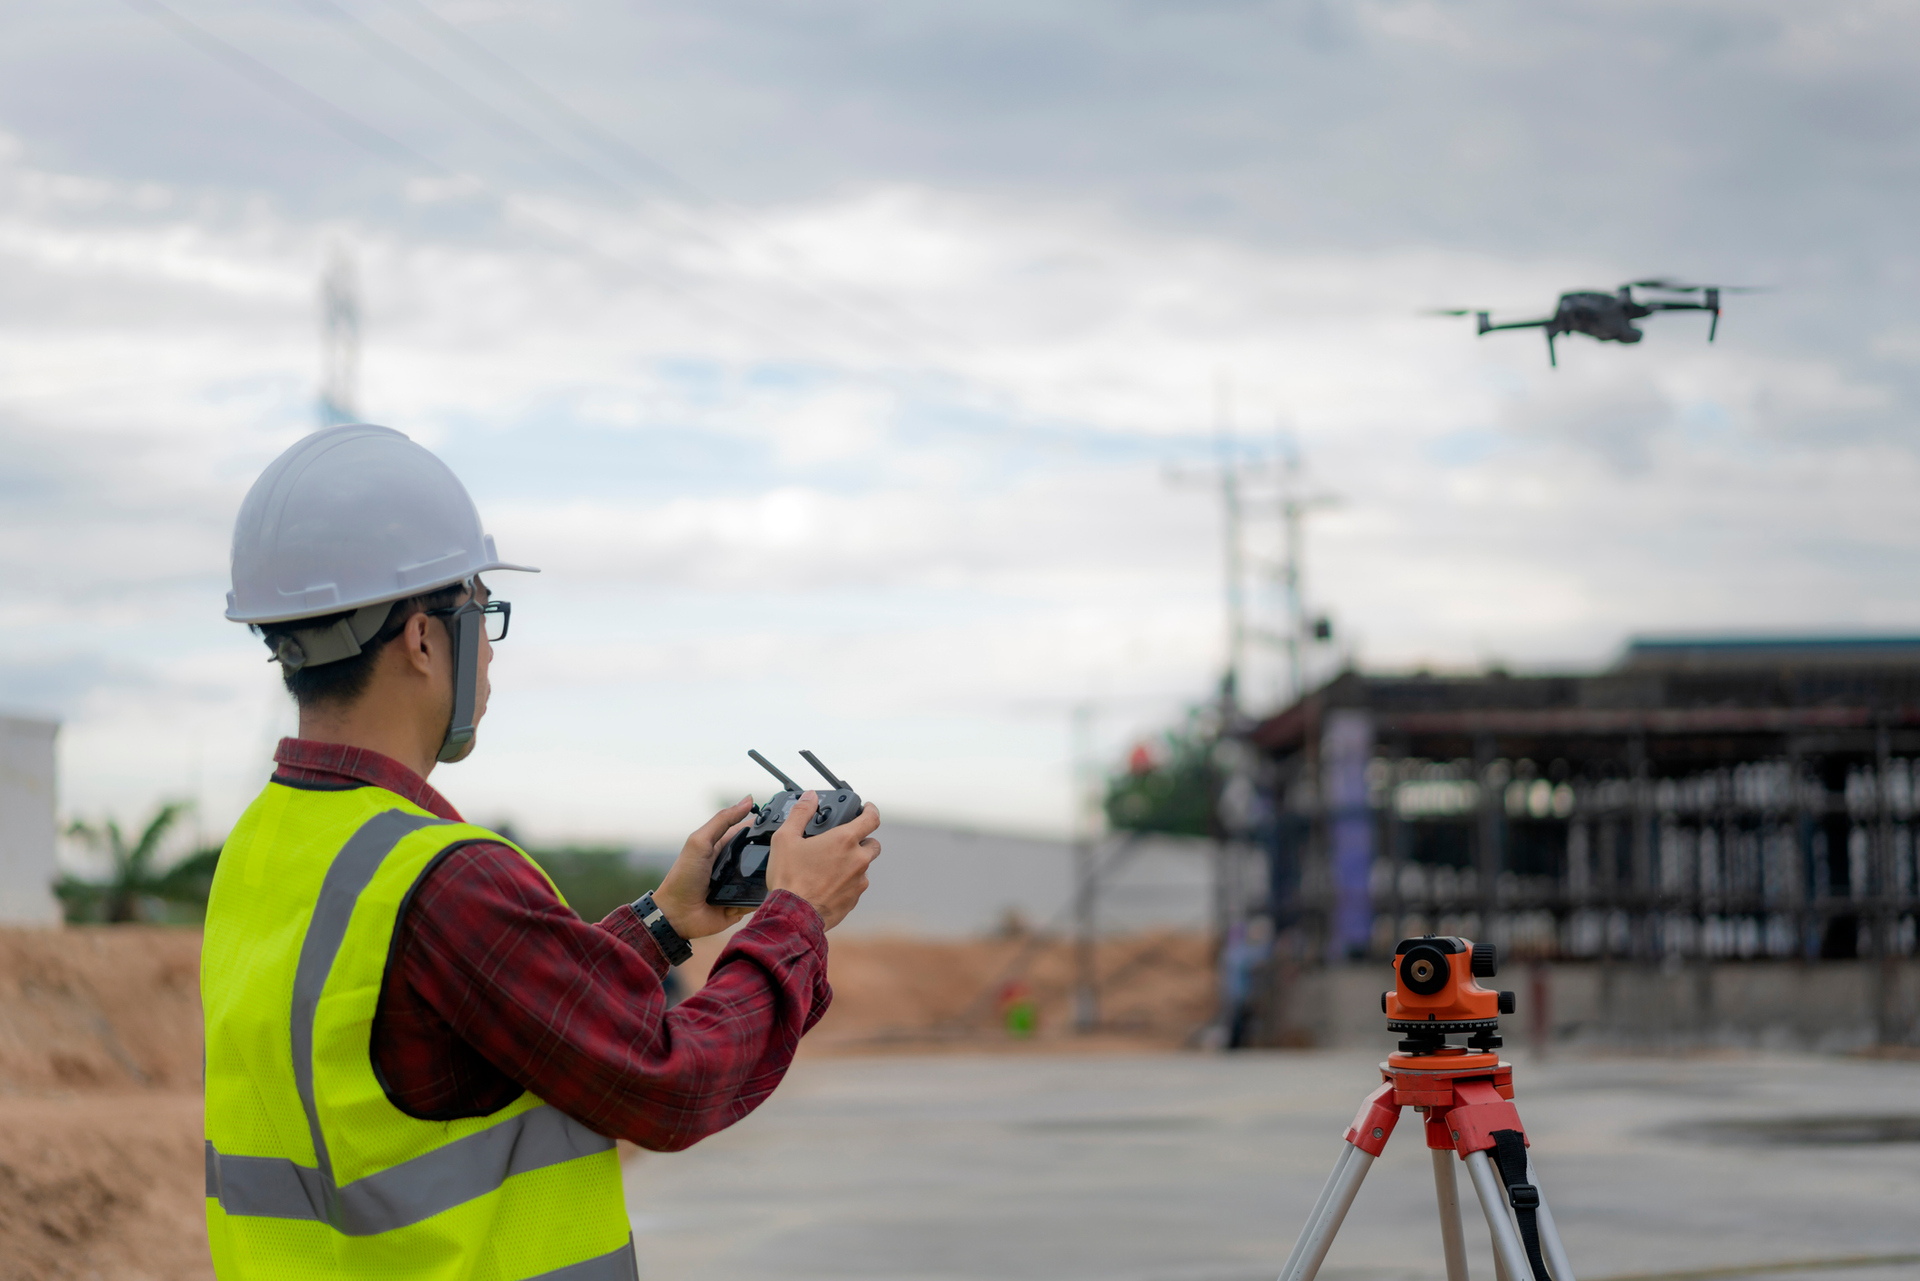 How drones could transform cities